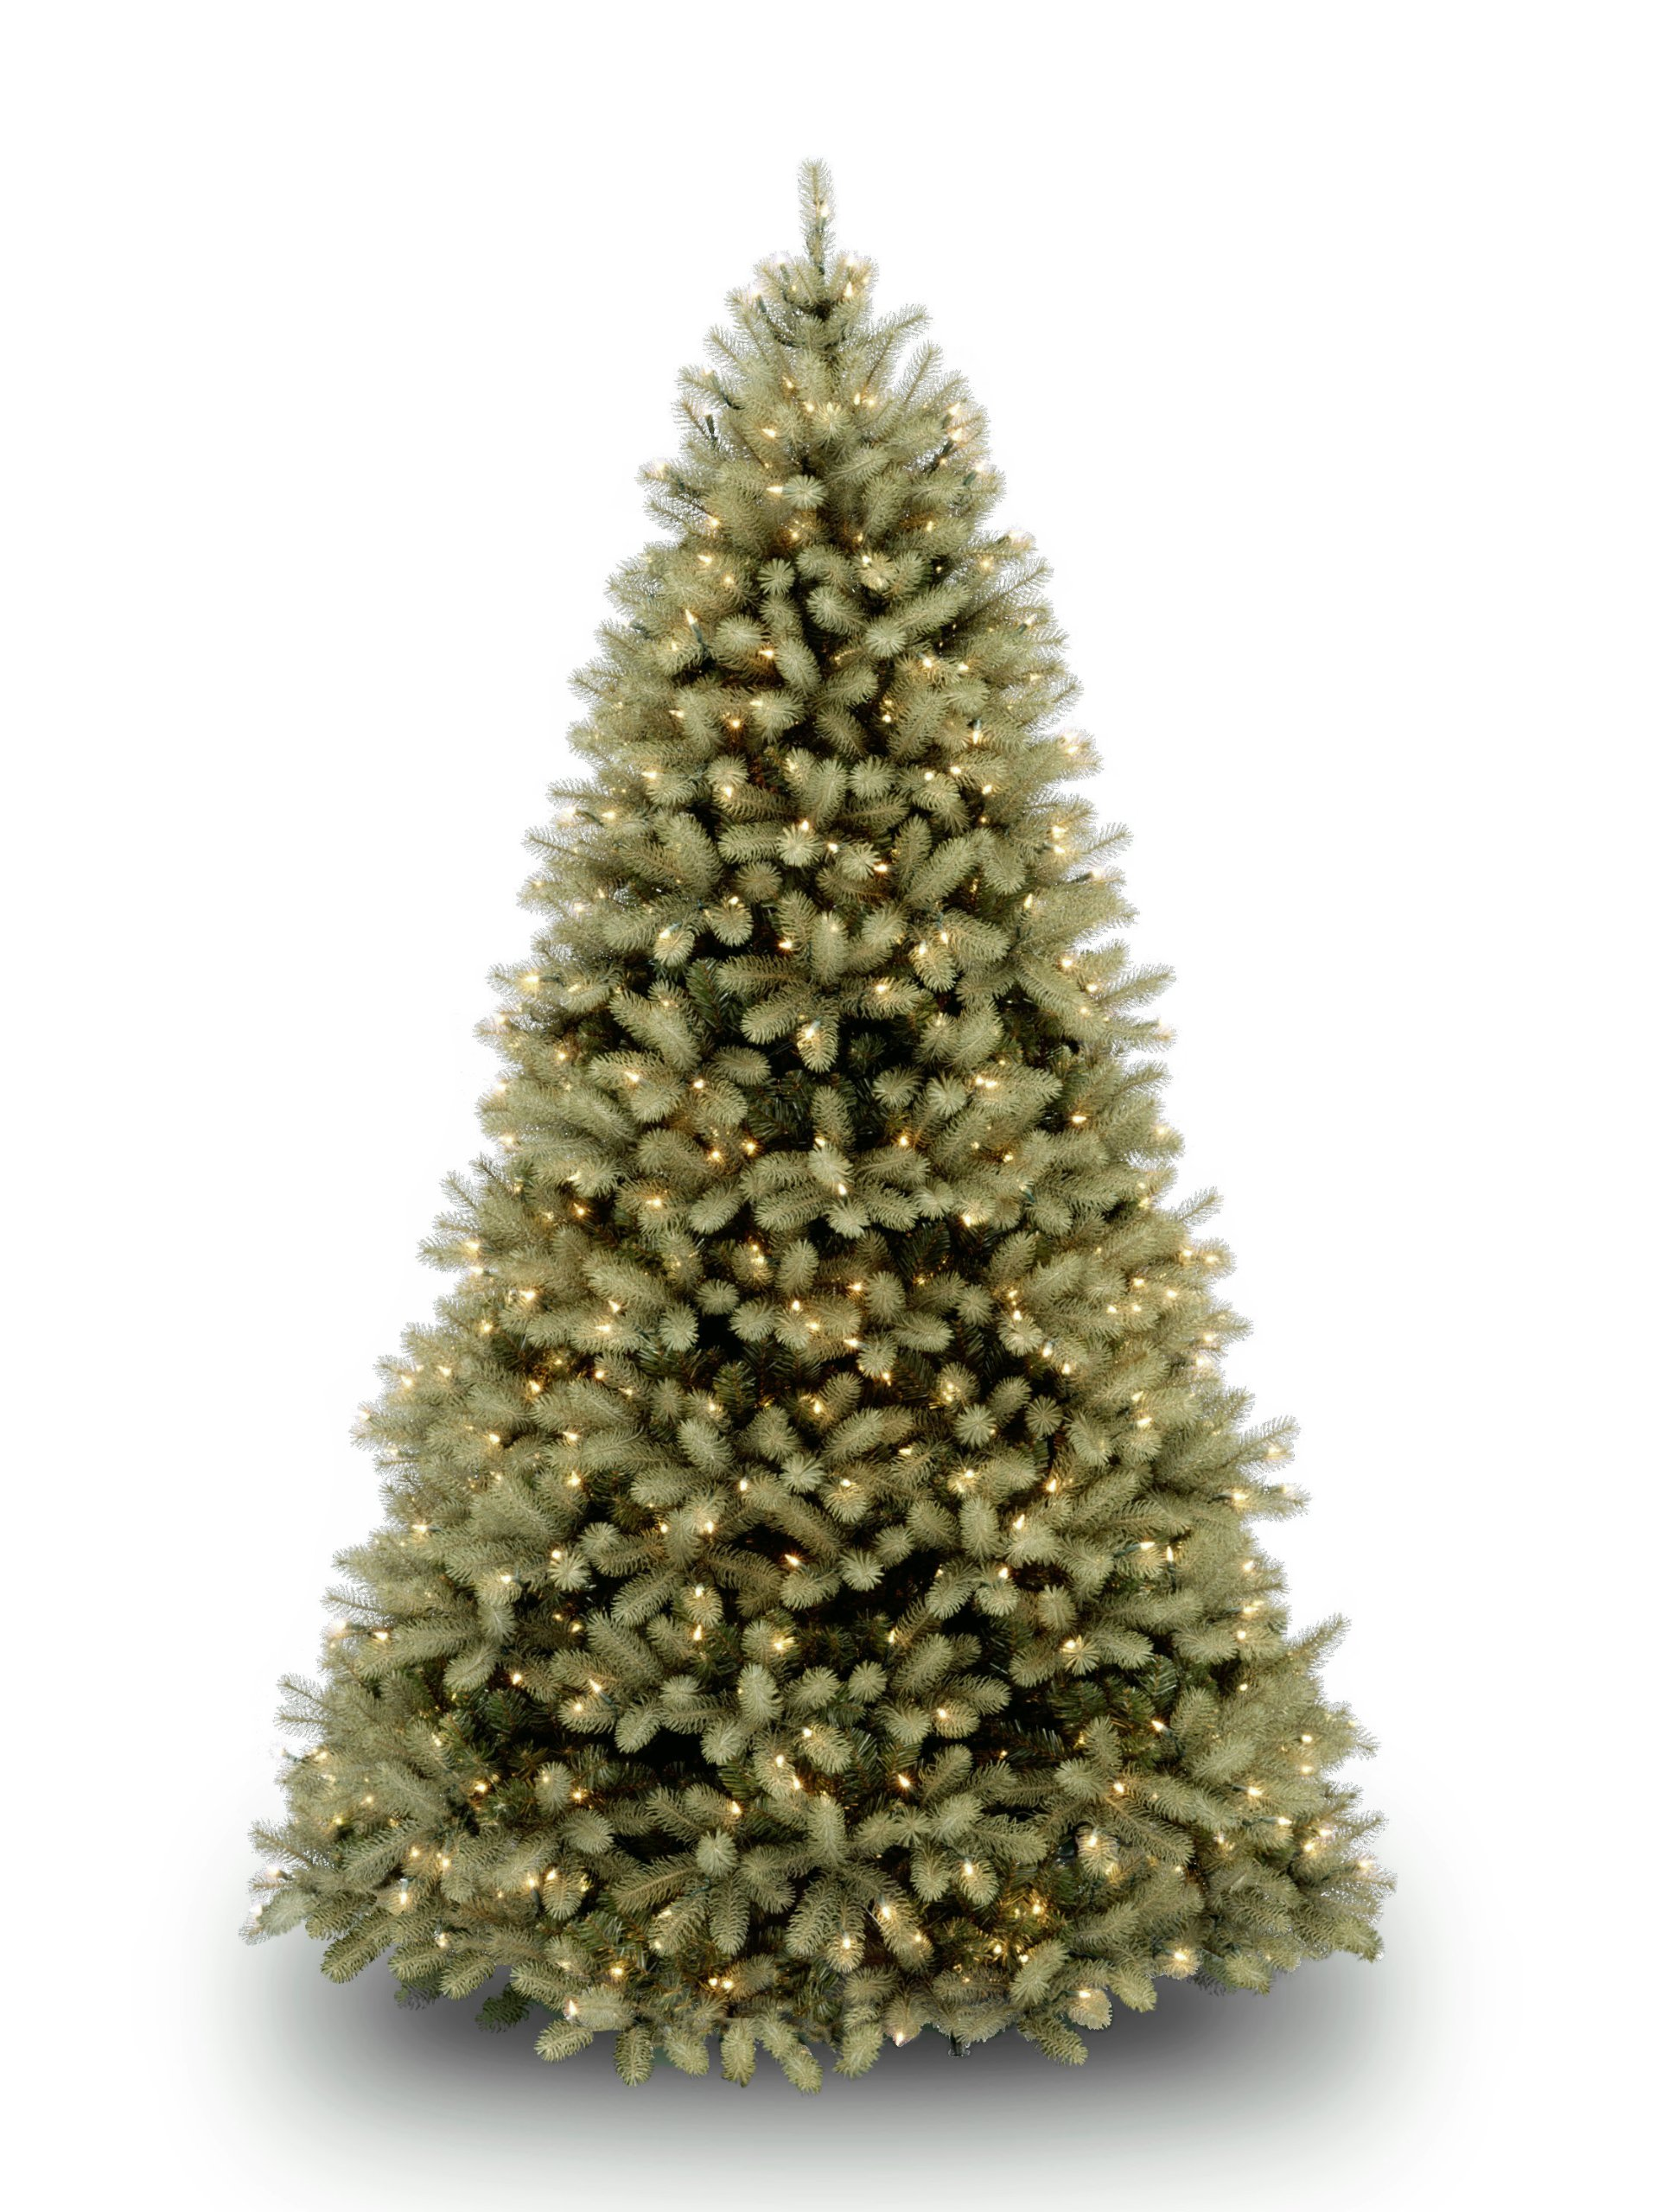 National Tree 7.5 Foot ''Feel Real'' Downswept Douglas Fir Tree with 750 Dual Color LED Lights and On/Off Switch, Hinged (PEDD1-312LD-75X) by National Tree Company